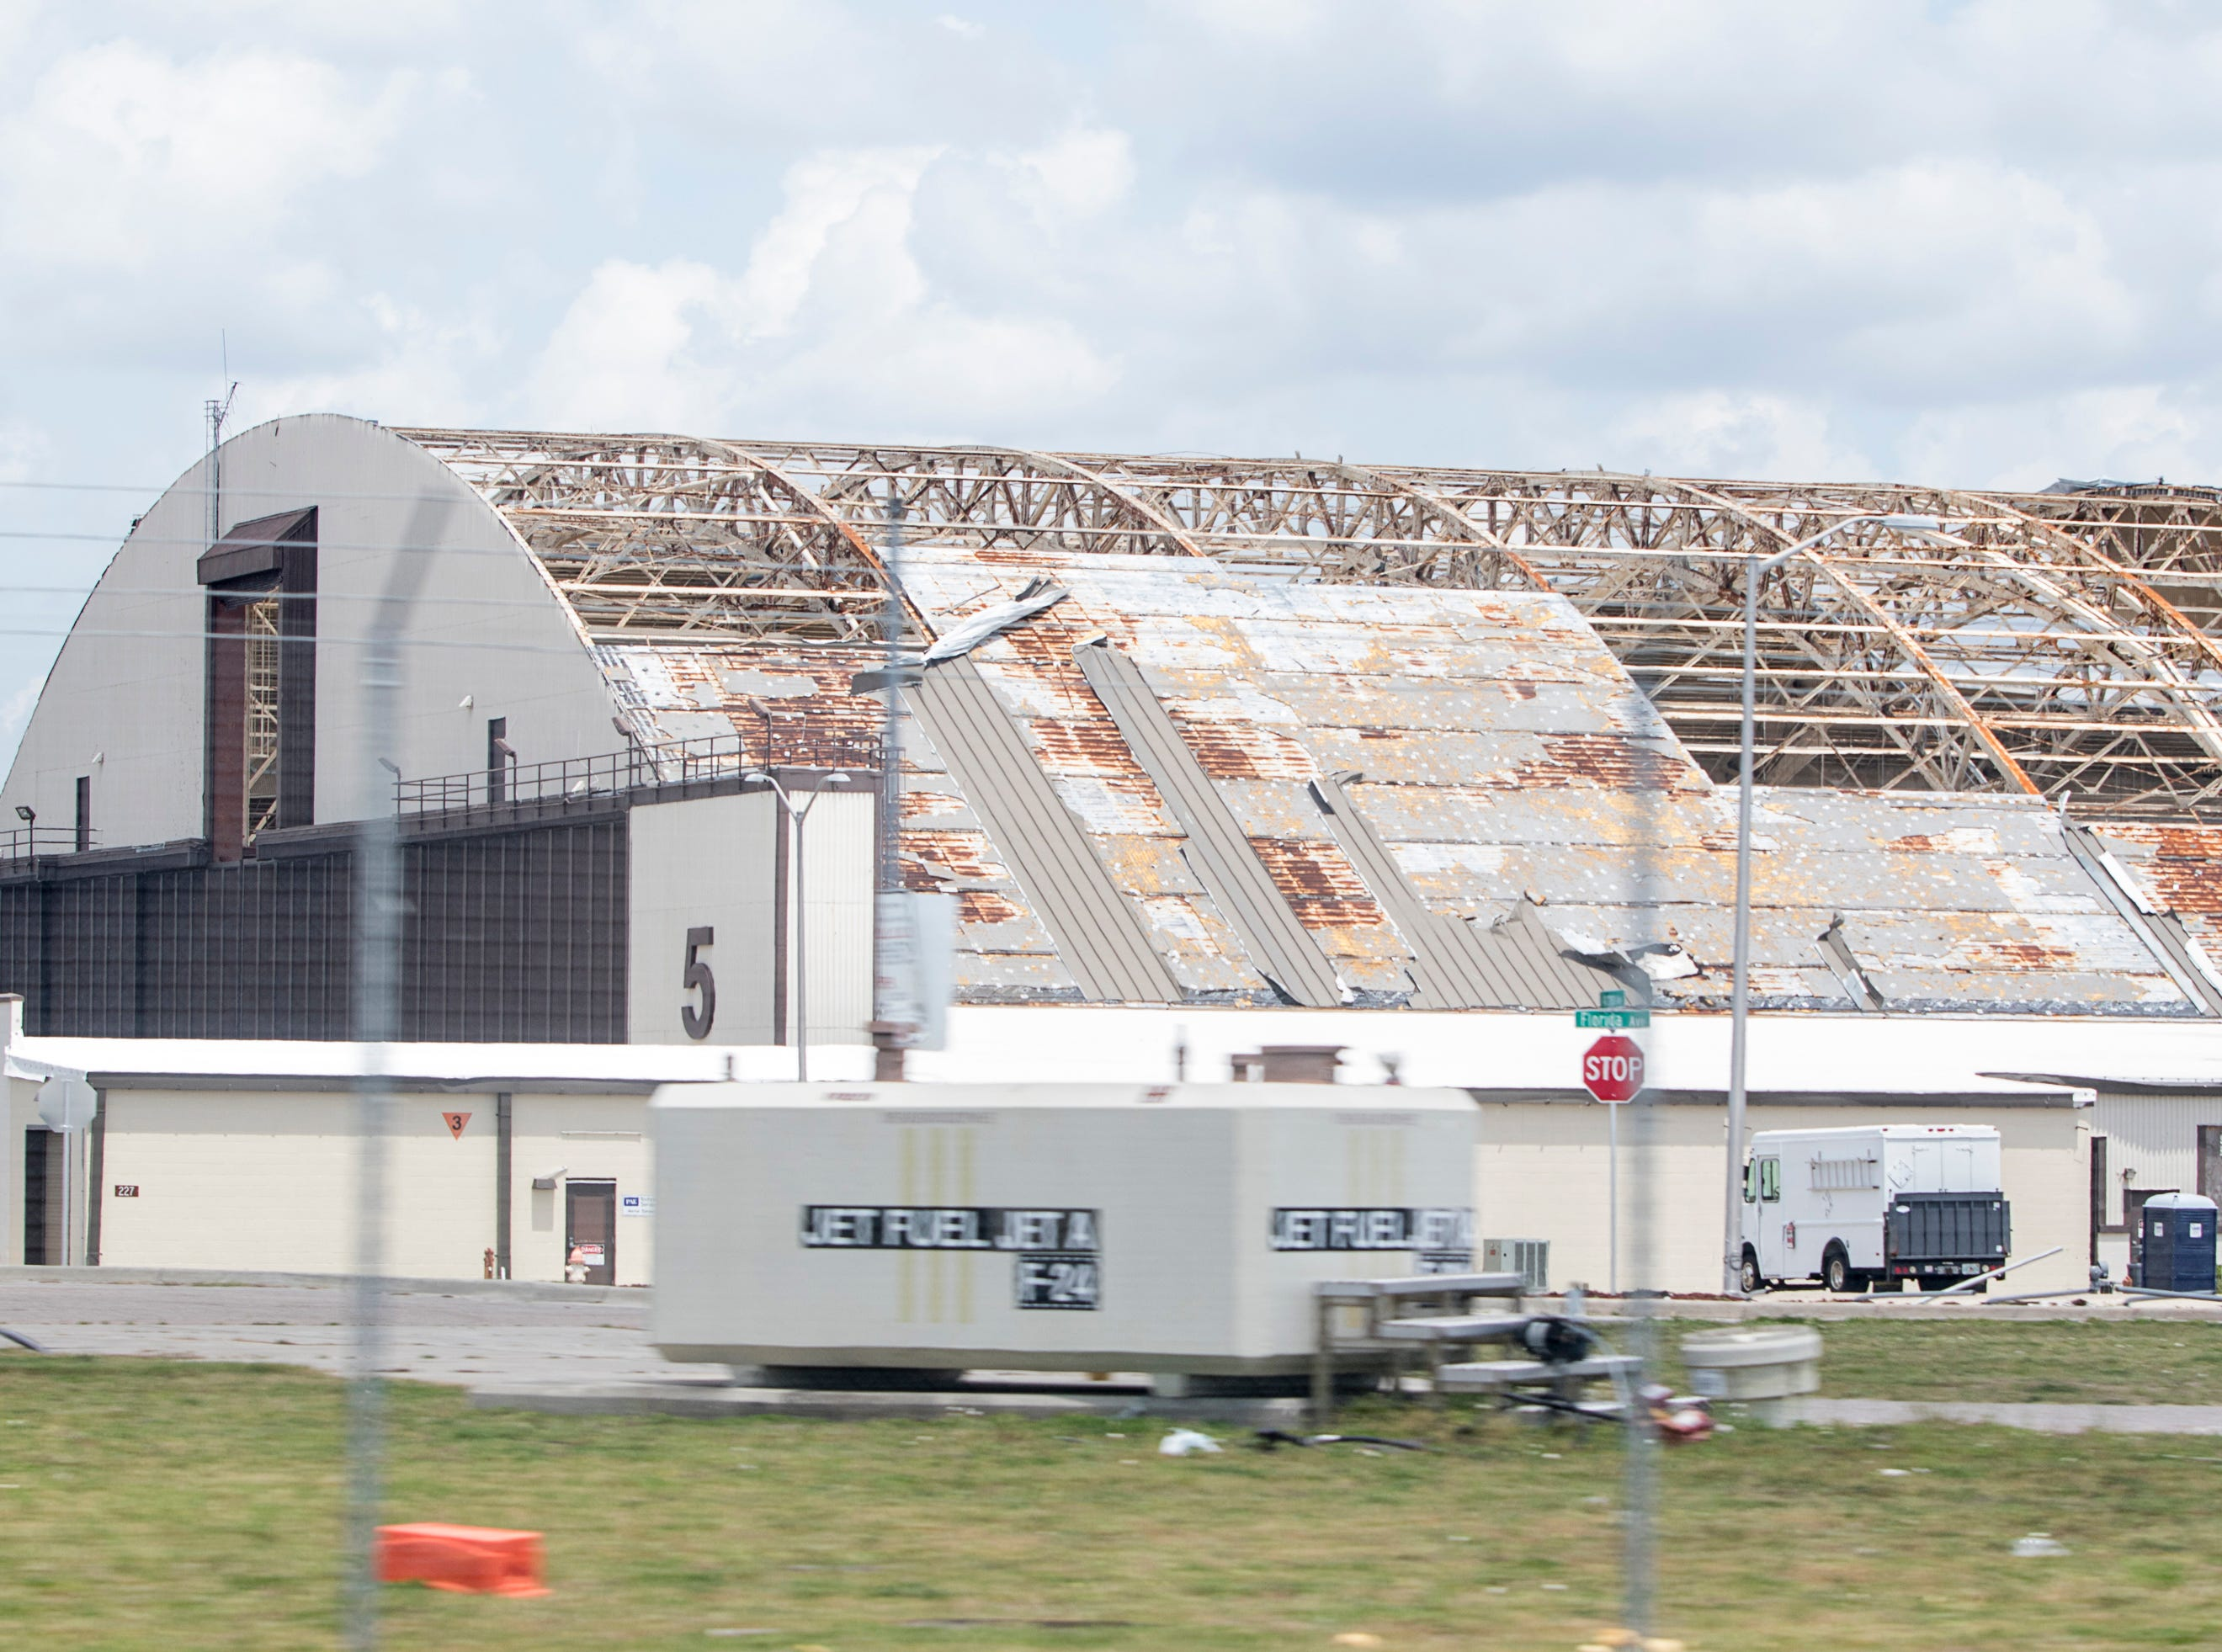 Widespread damage is still clearly seen across Tyndall Air Force Base in the Panama City area of Florida on Wednesday, May 8, 2019.  Michael made landfall as a Category 5 hurricane between Mexico Beach and Tyndall Air Force Base on October 10, 2018.